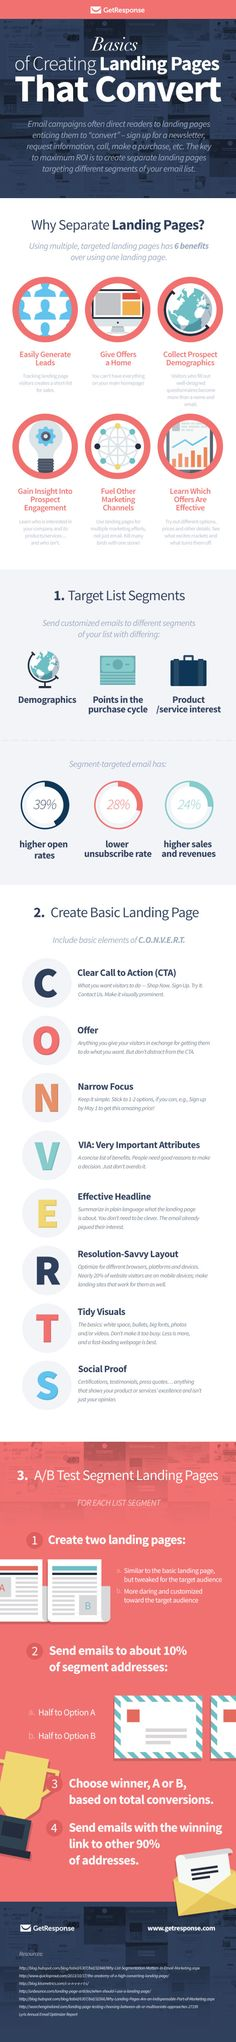 Basics to creating landing pages that convert - For more Tips and resources visit www.socialmediamamma.com Infographic